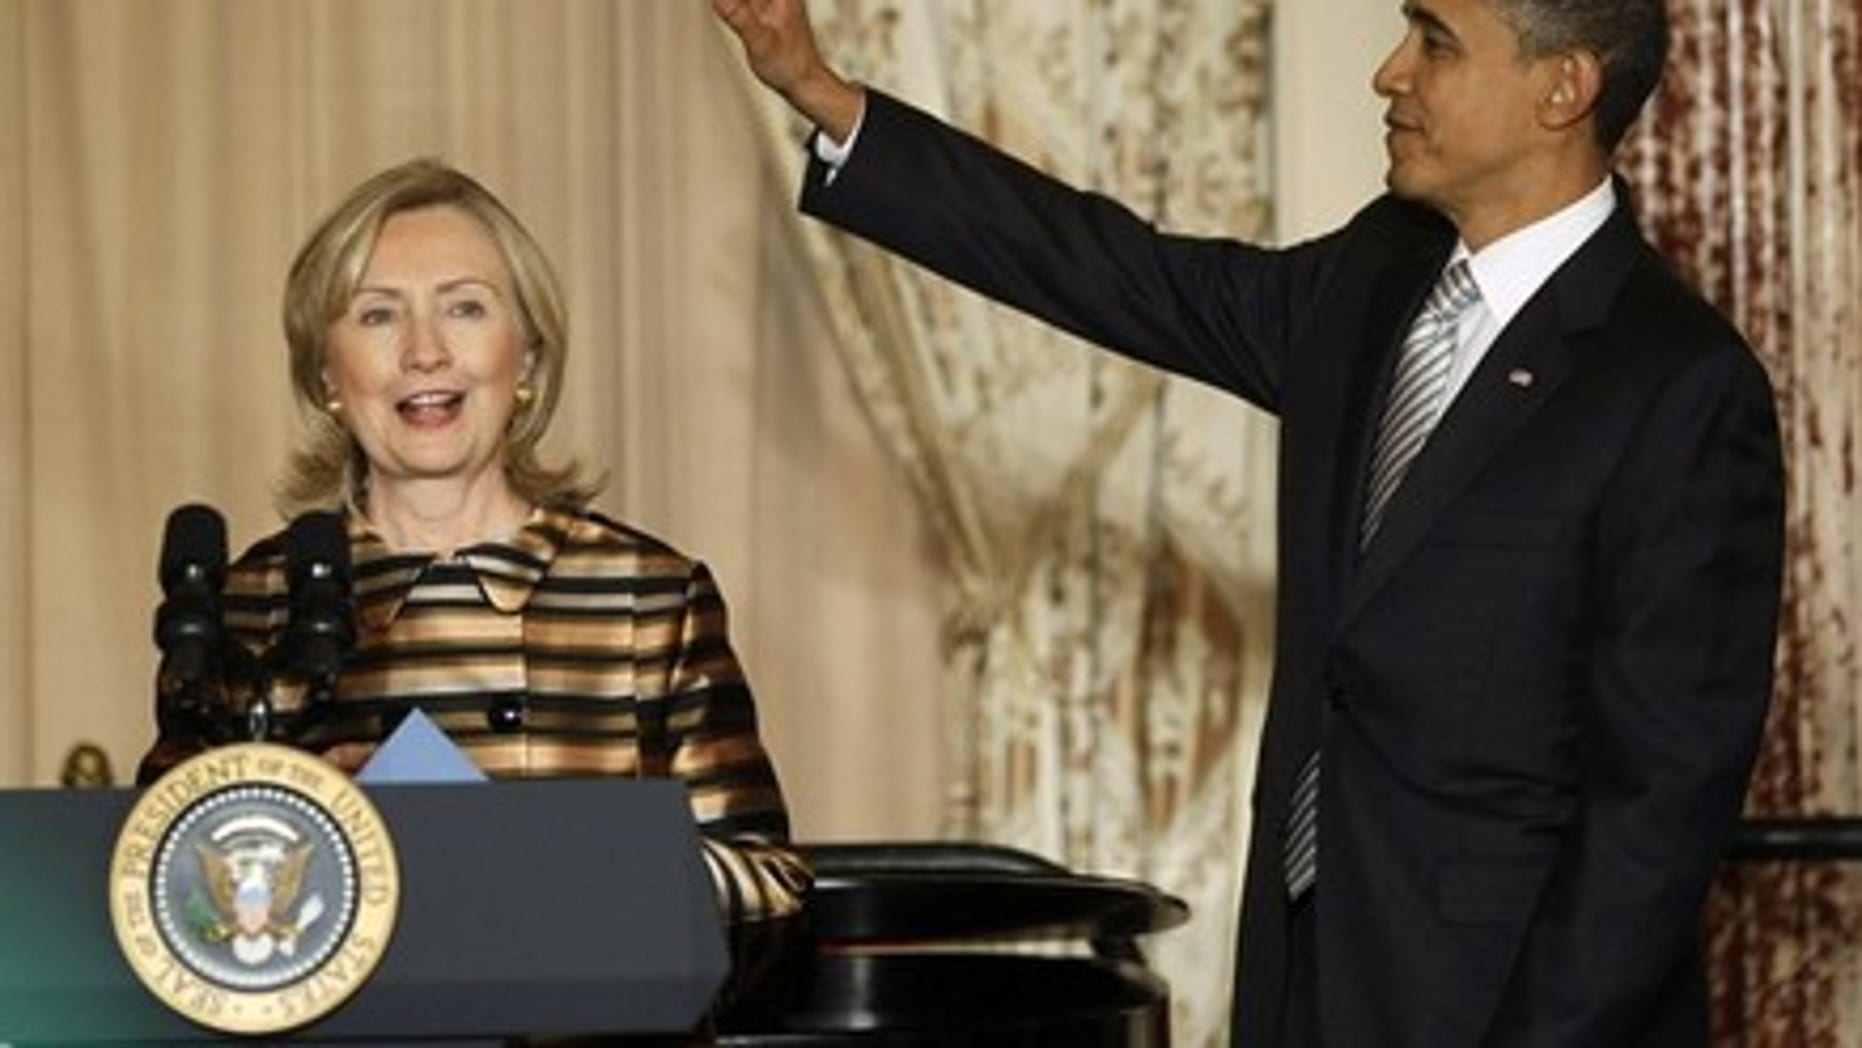 Dec. 13: President Obama waves at guests as Secretary of State Hillary Clinton introduces him to speak at a holiday reception for diplomats and state department employees at the State Department in Washington.